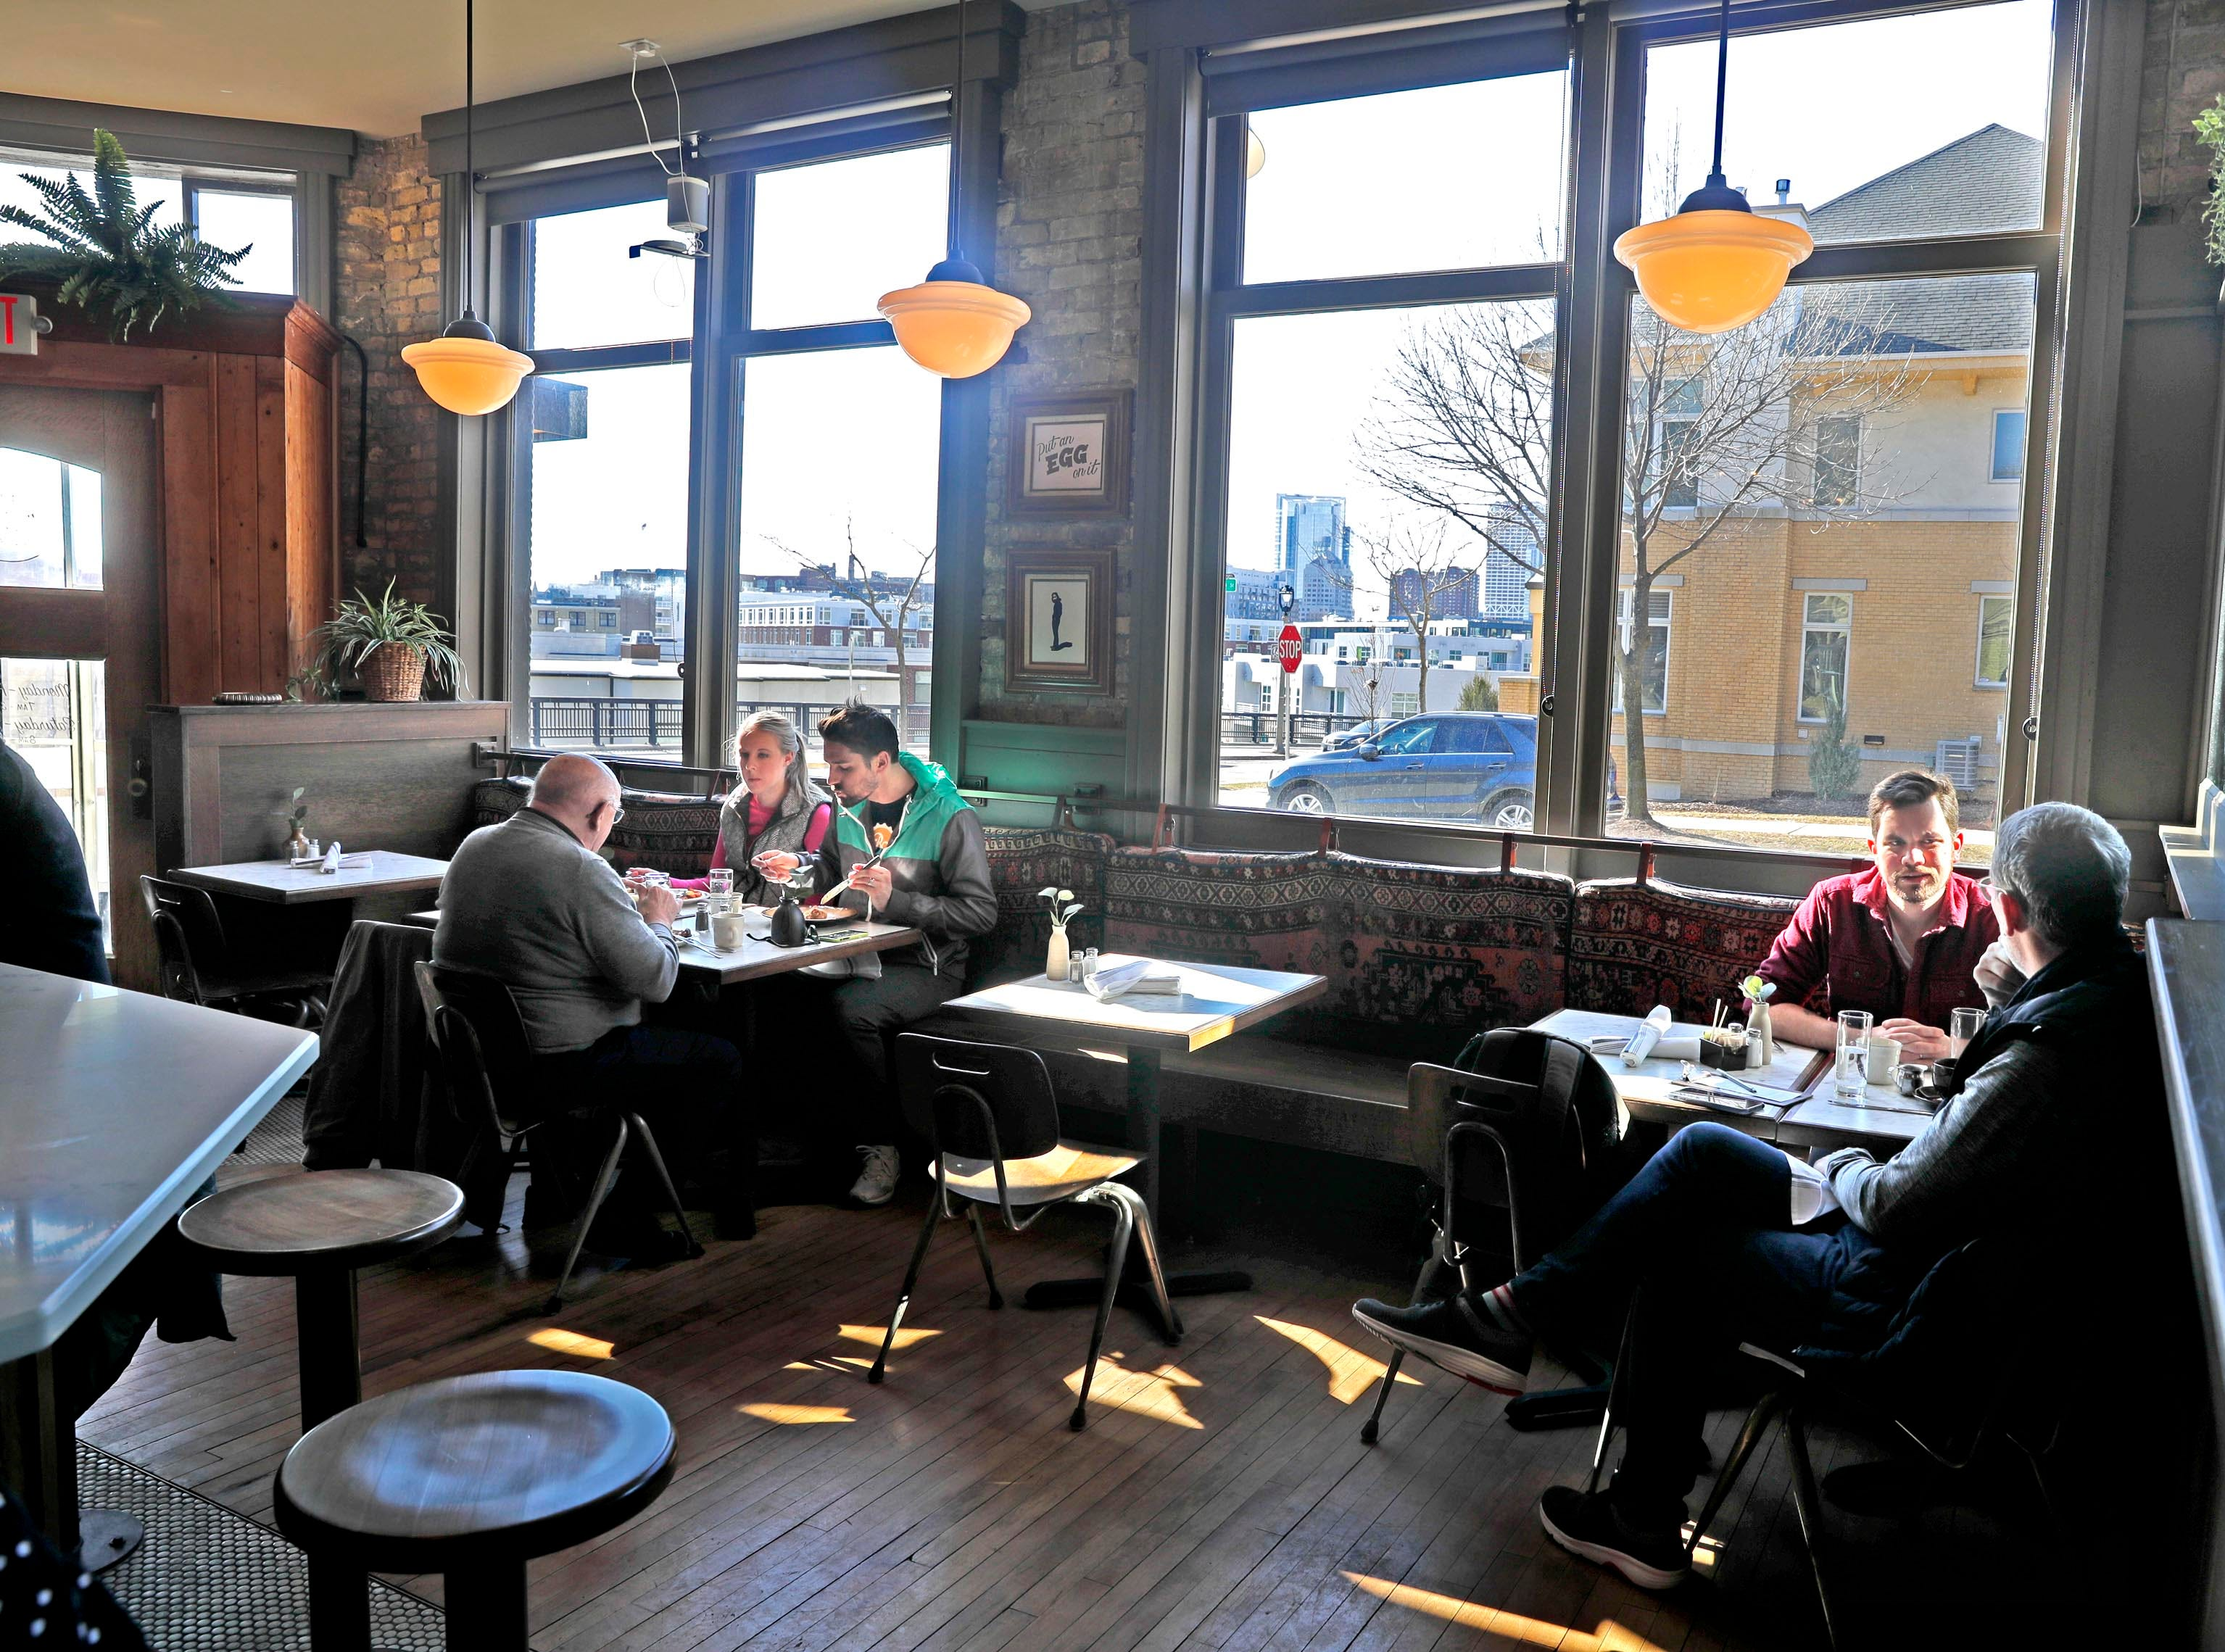 Some seats at Uncle Wolfie's Breakfast Tavern in Brewers Hill have a view of the downtown skyline. The restored Cream City brick building dates to 1902.